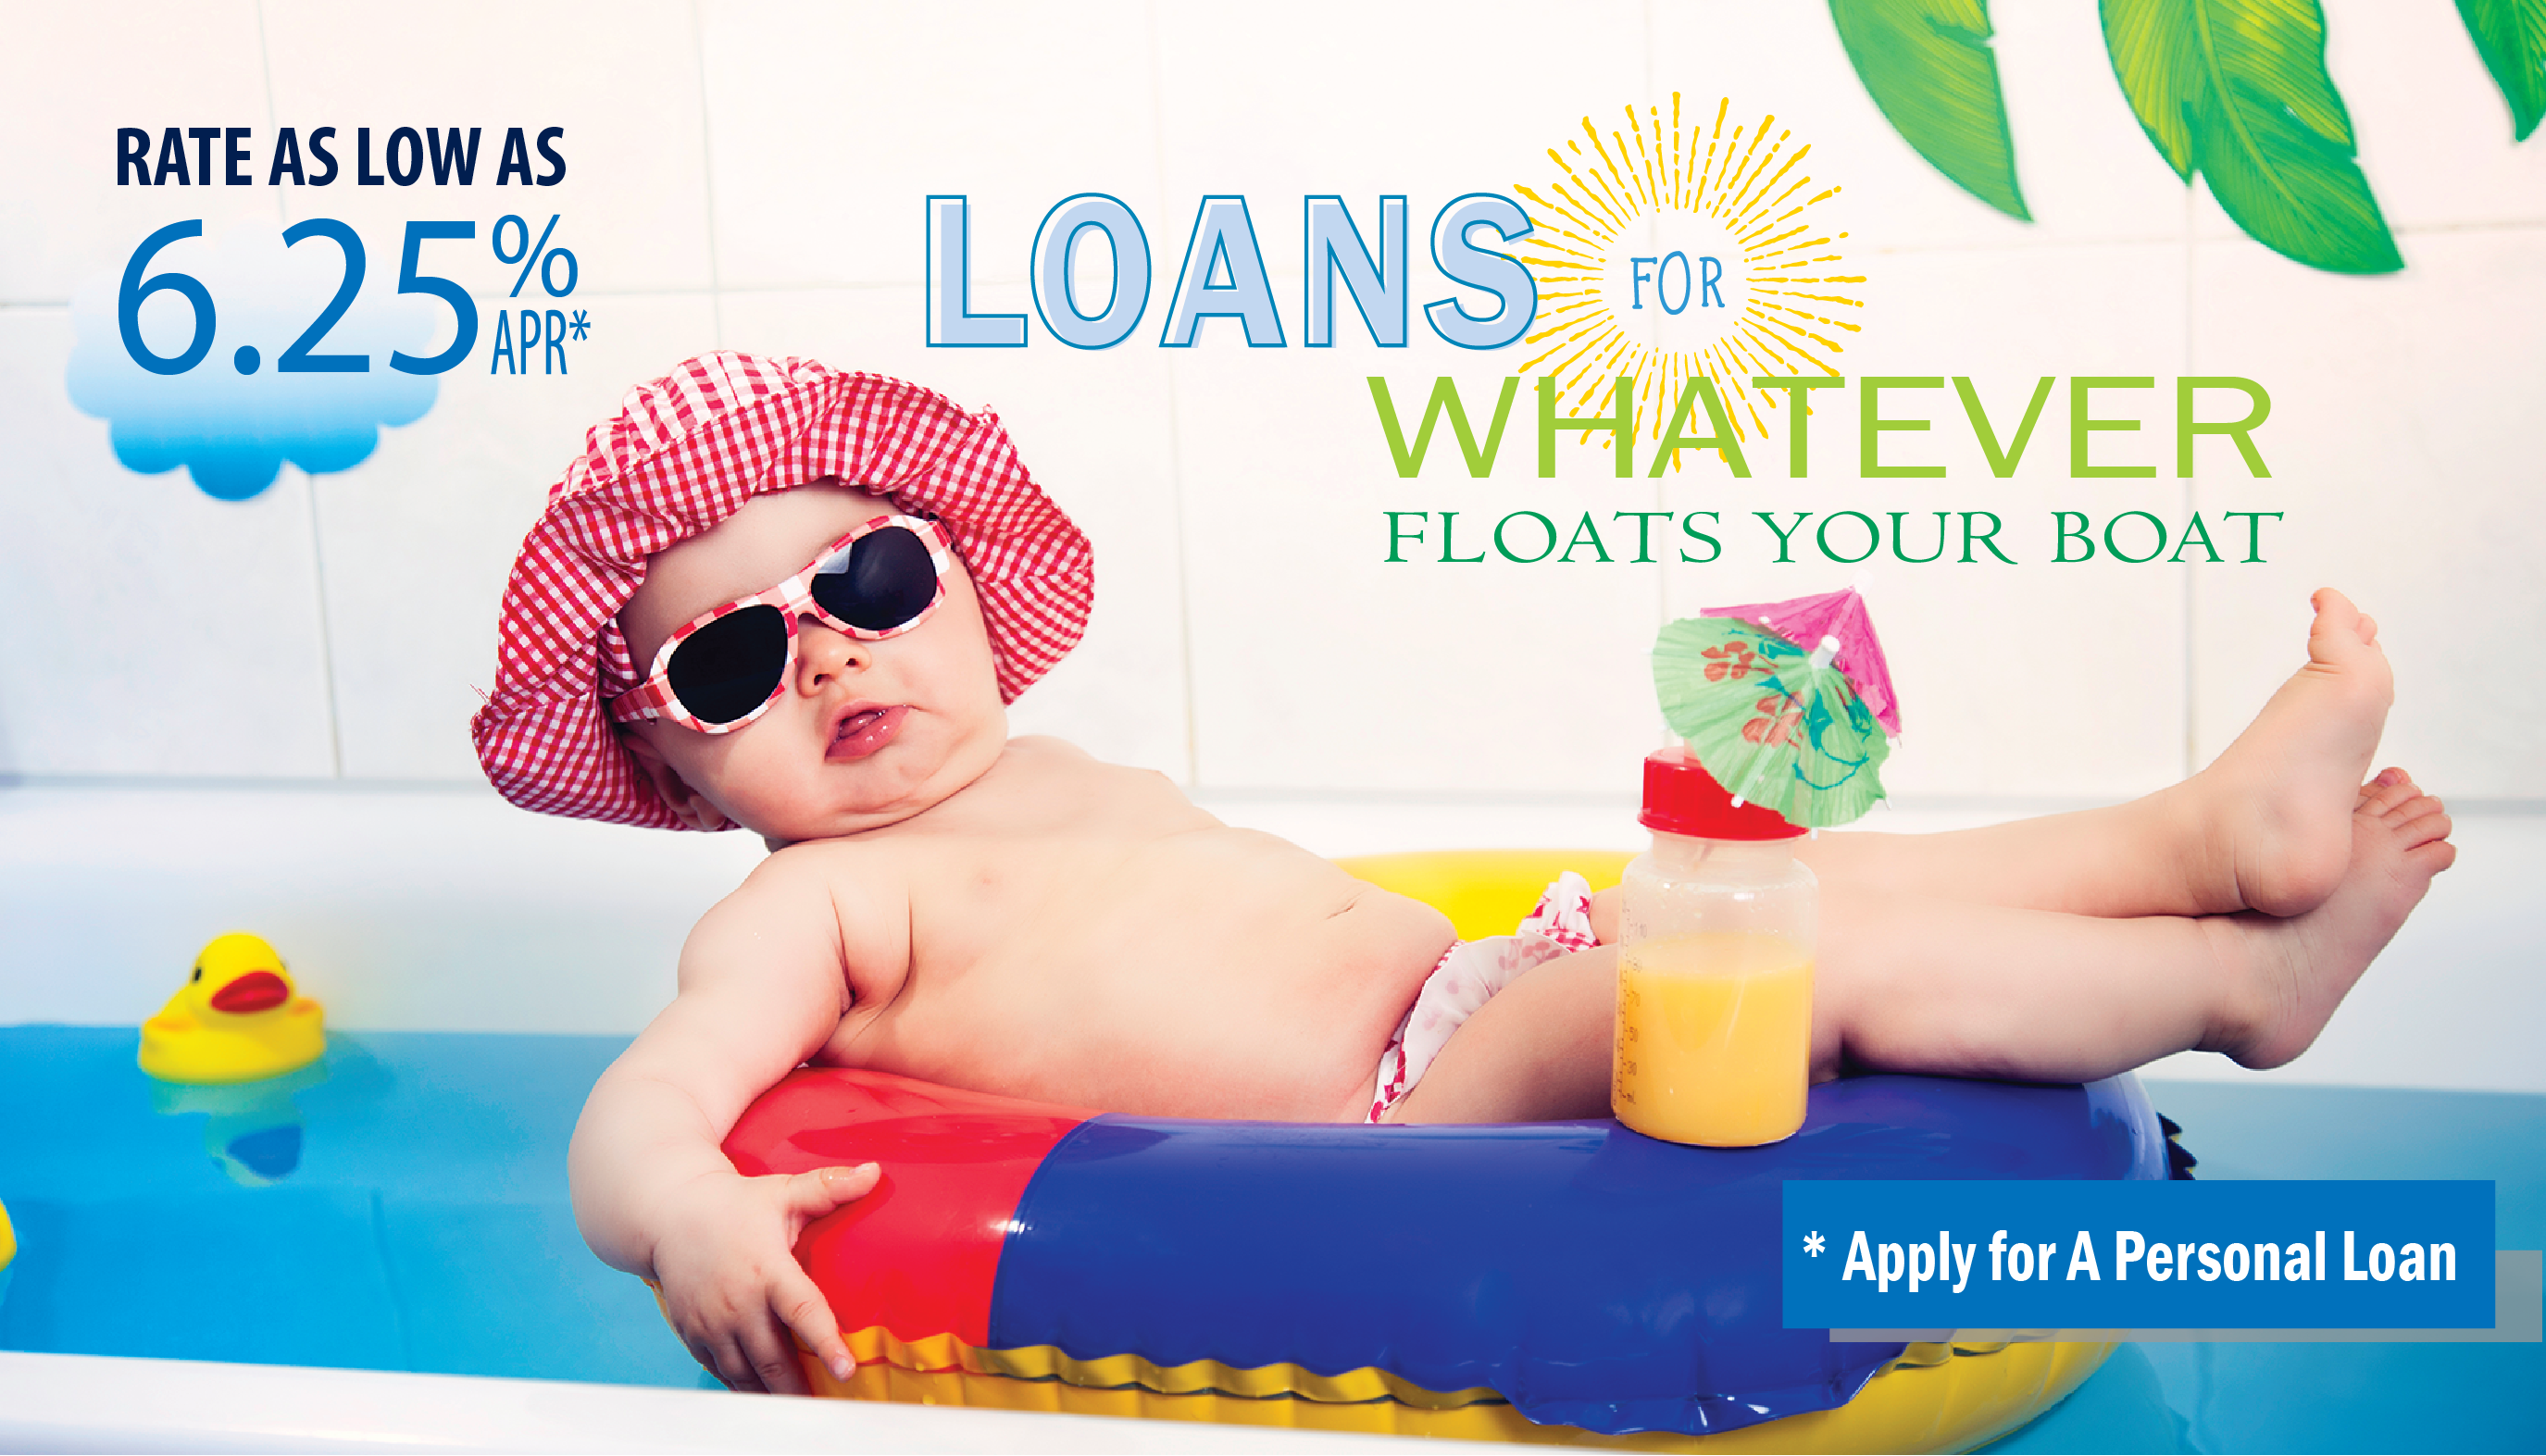 Loans for Whatever Floats your Boat!